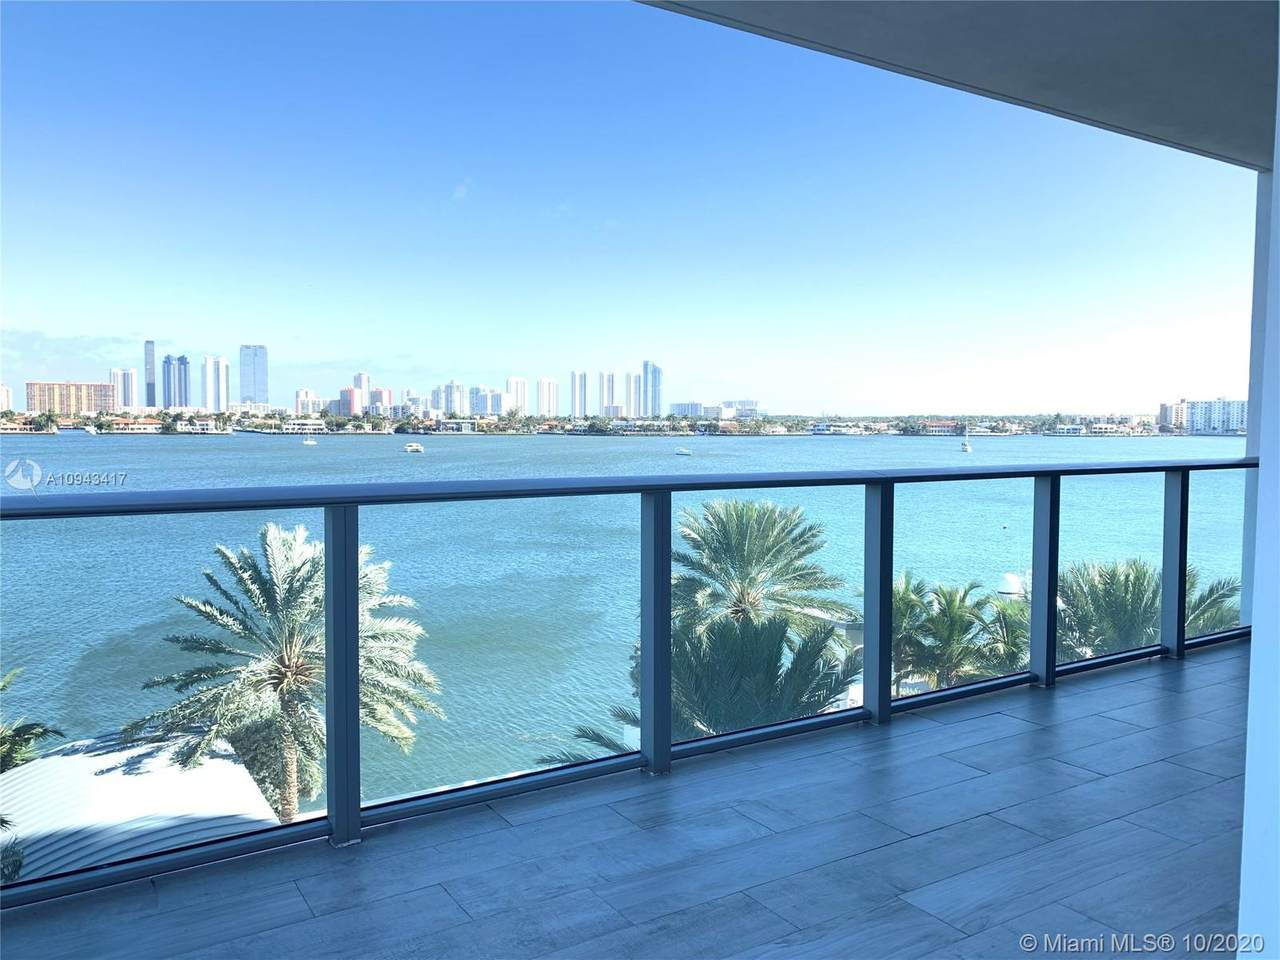 17301 Biscayne Blvd - Photo 1